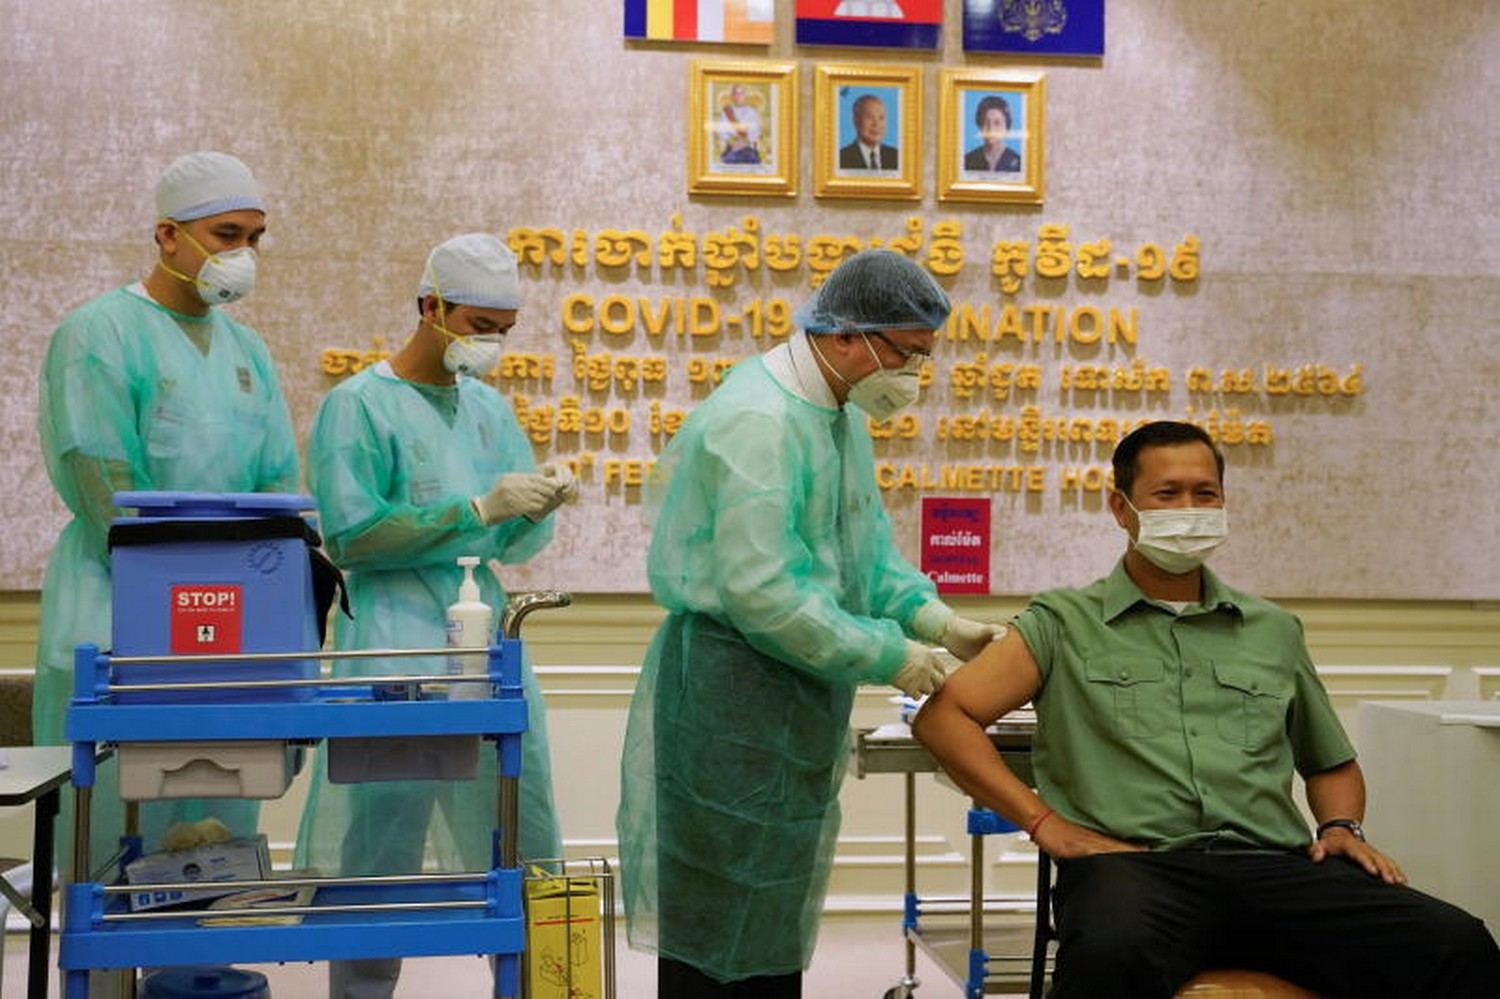 Cambodia begins Covid-19 vaccinations with shots for PM's sons, ministers